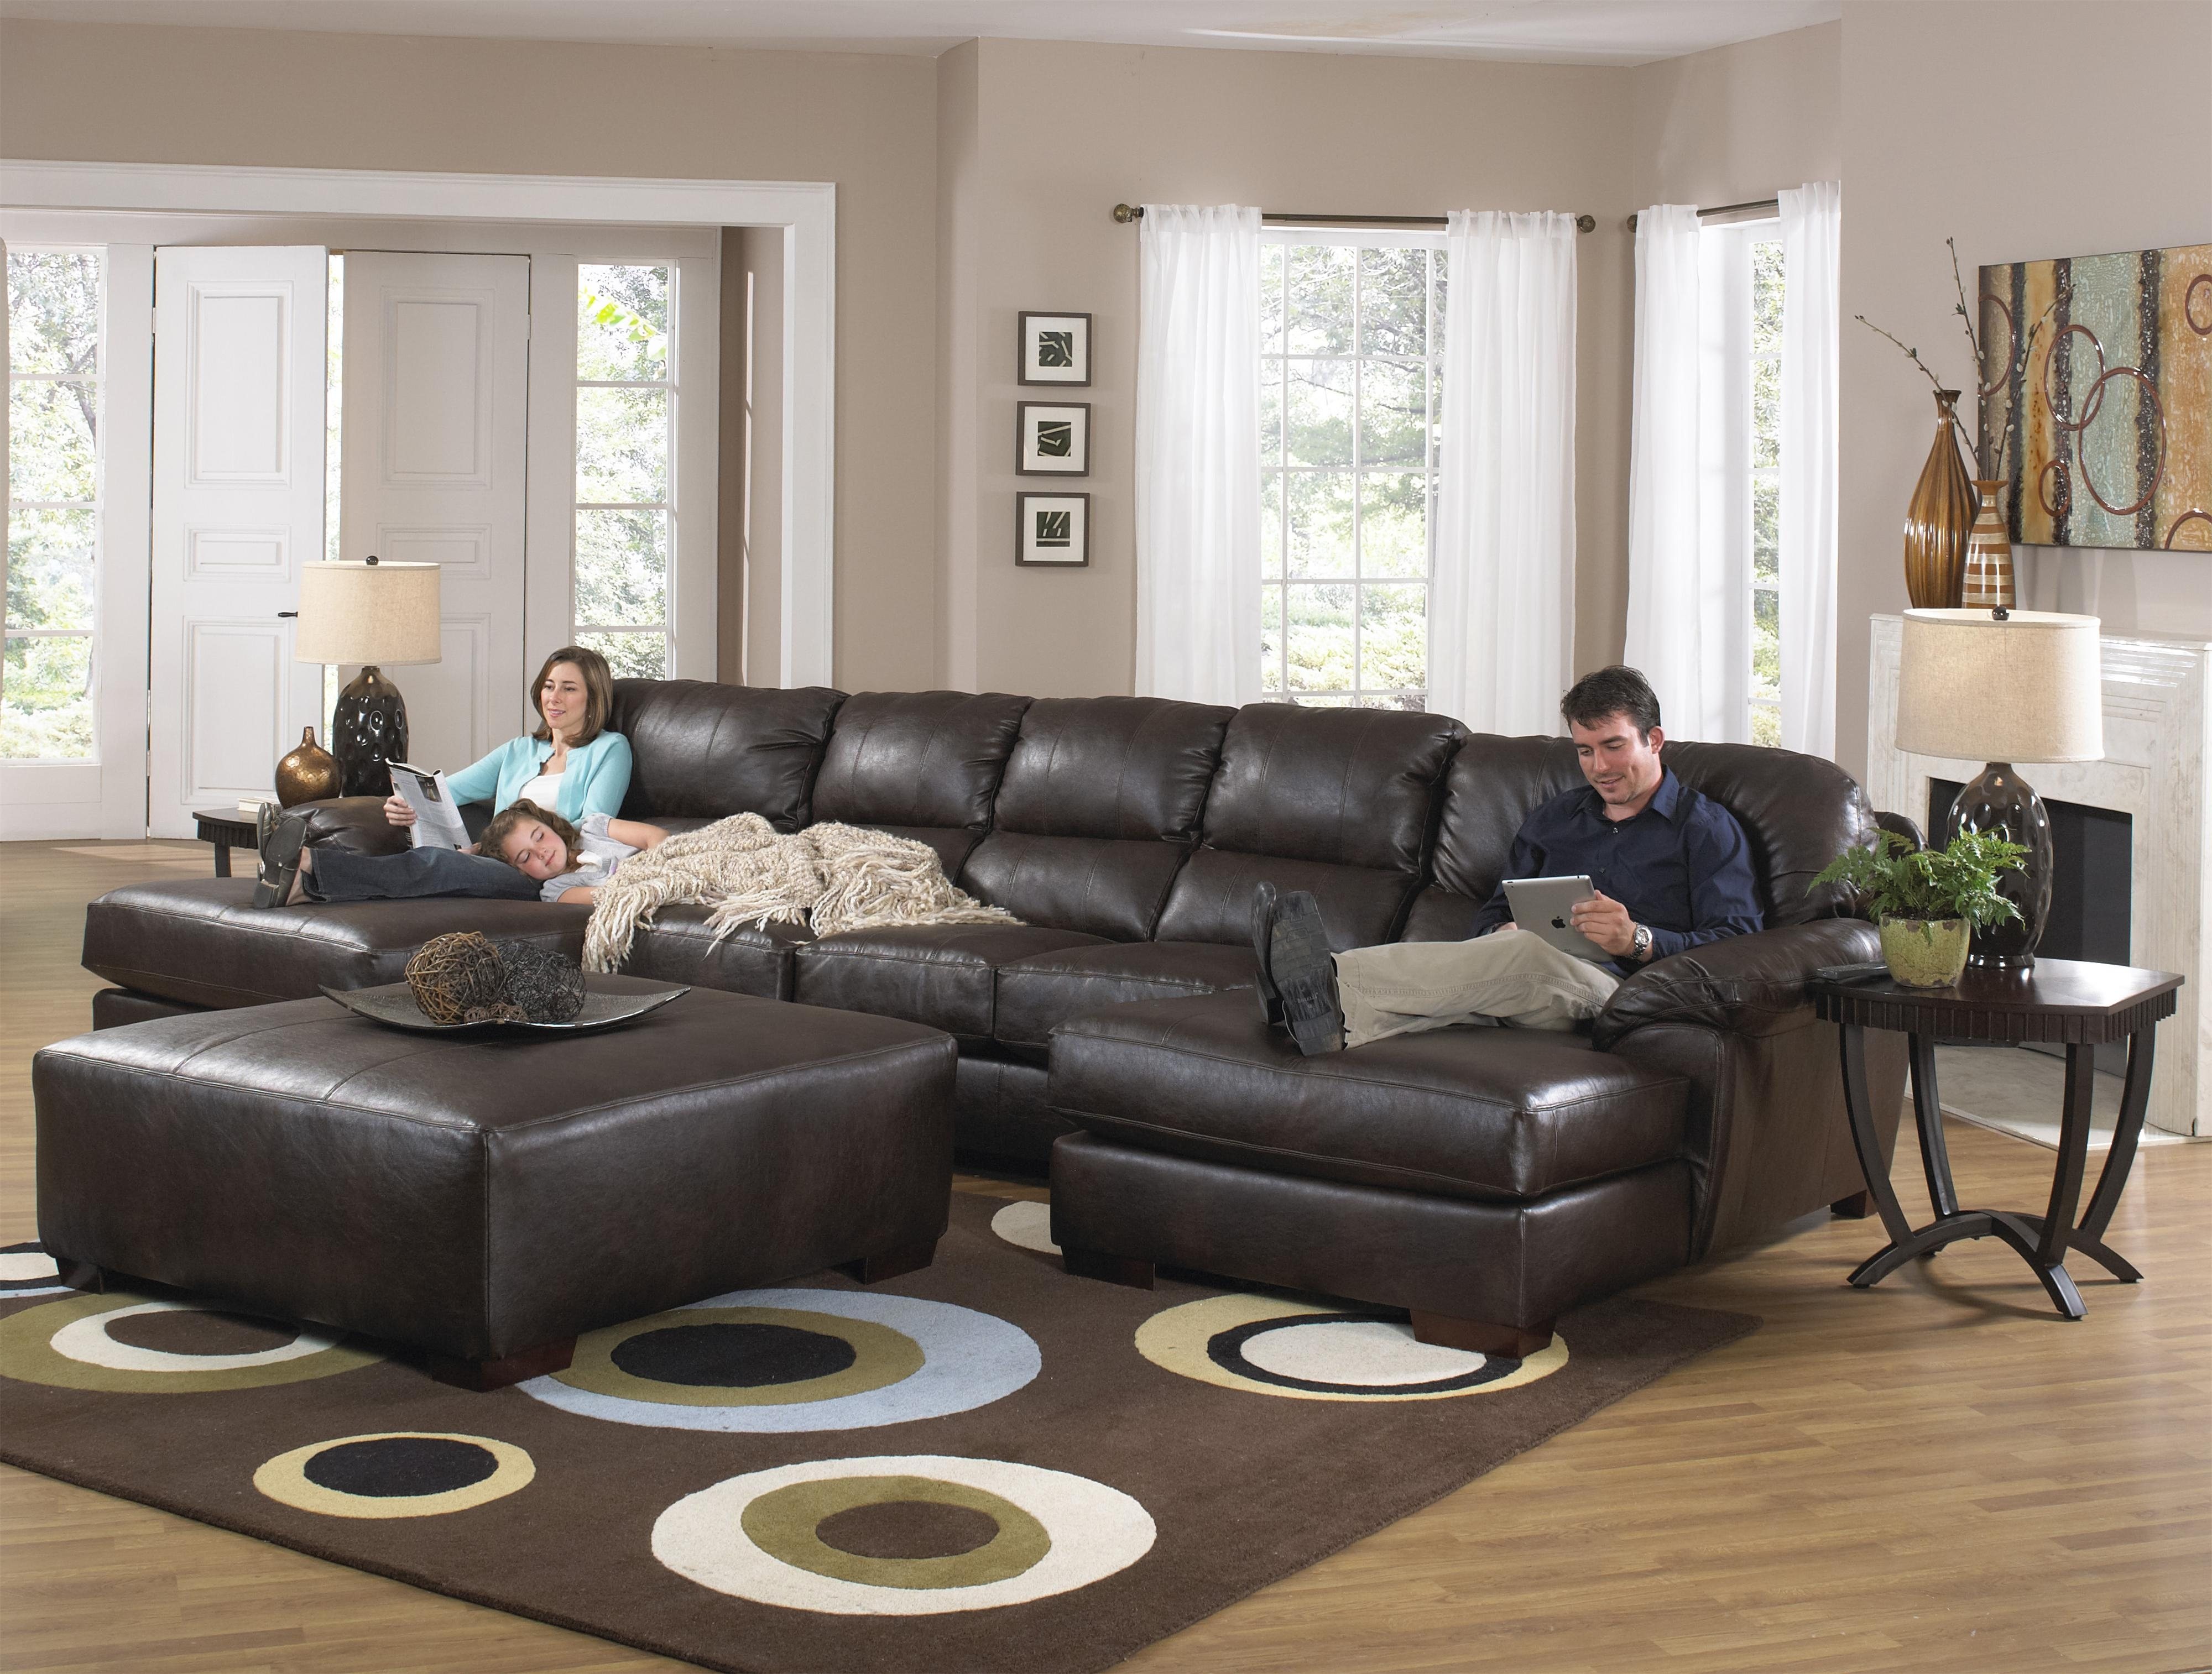 Furniture : Two Chaise Sectional Sofa With Five Total Seats within Sectional Sofas With Chaise and Ottoman (Image 8 of 15)